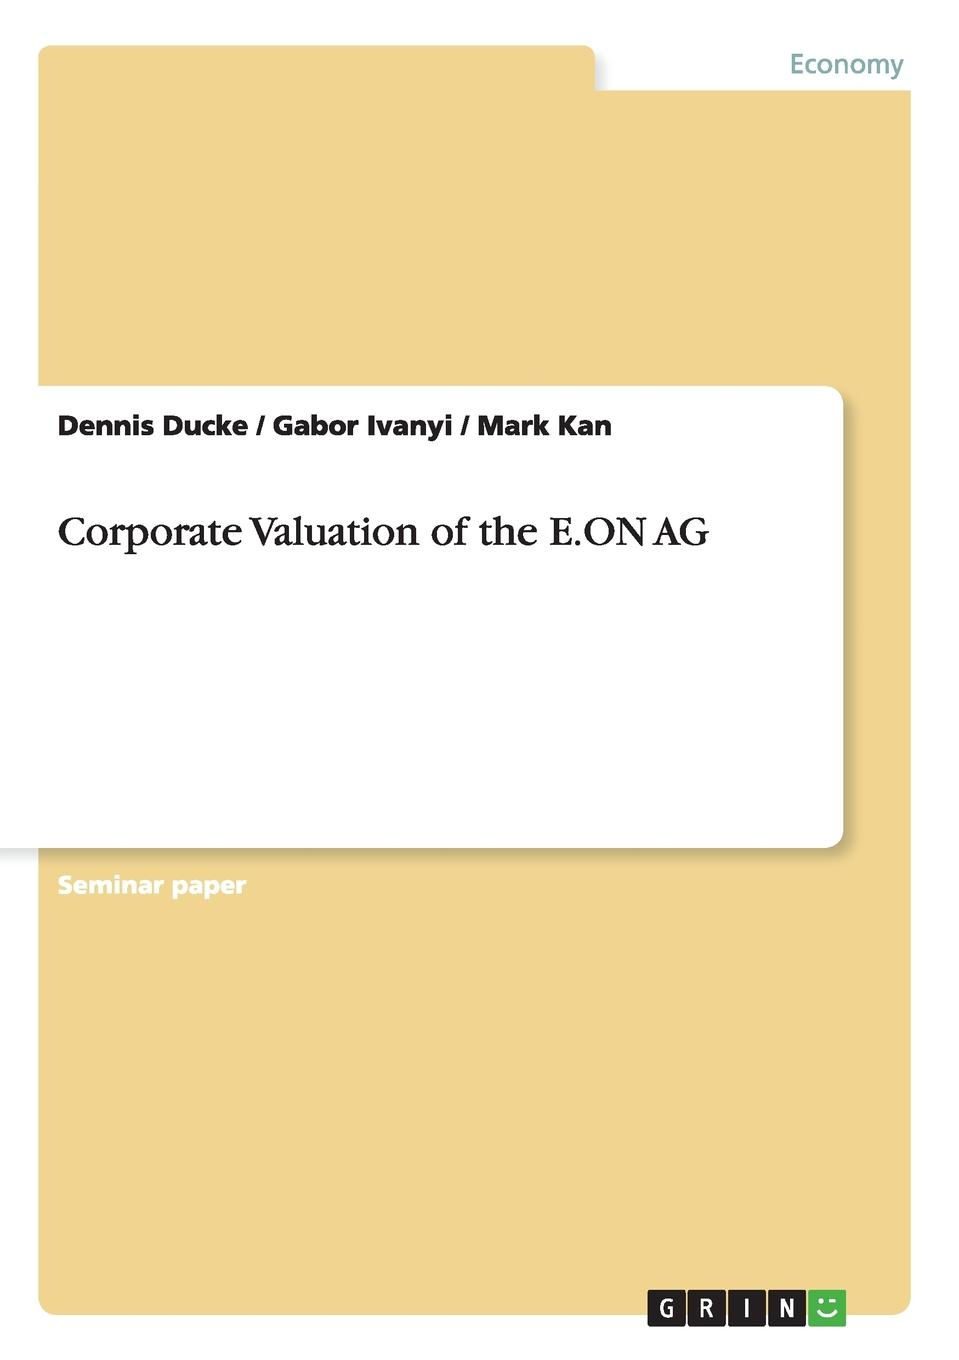 Dennis Ducke, Gabor Ivanyi, Mark Kan Corporate Valuation of the E.ON AG john price the conscious investor profiting from the timeless value approach